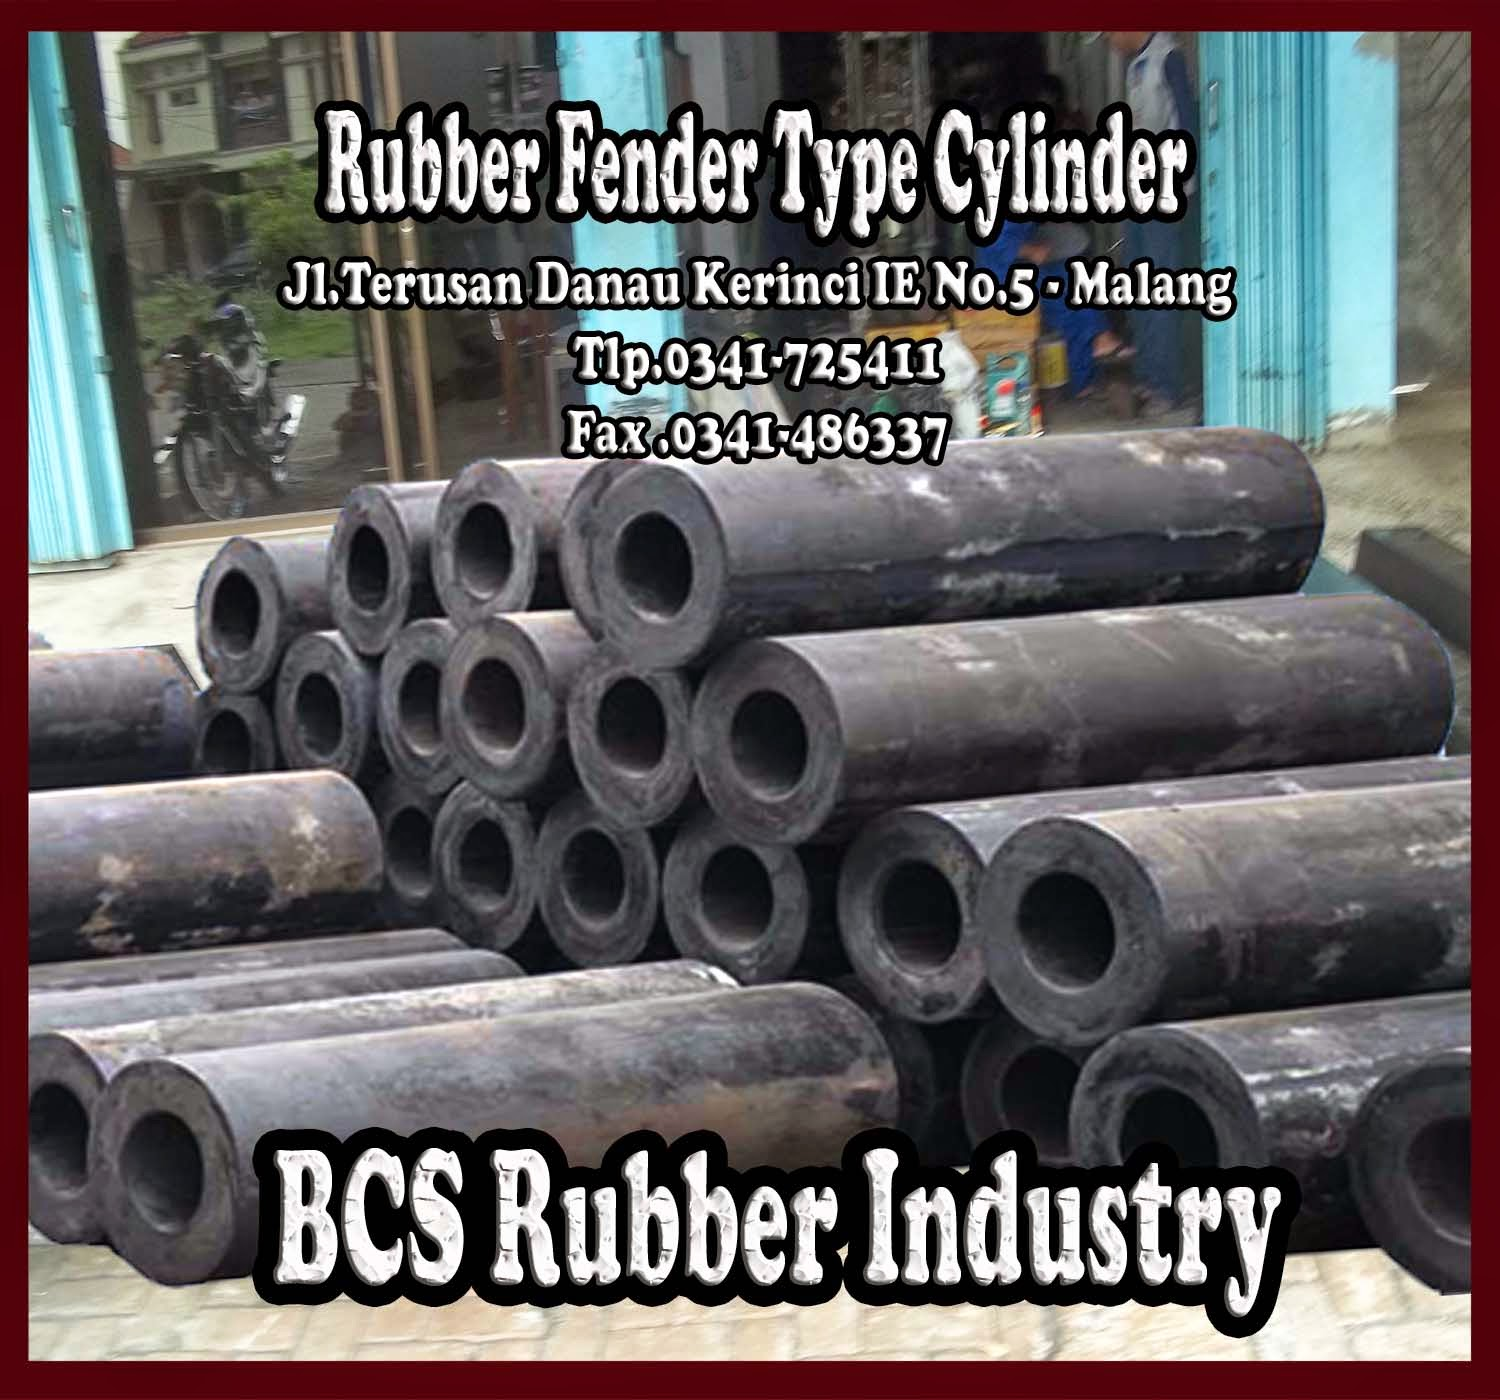 CYLINDER TYPE RUBBER FENDER